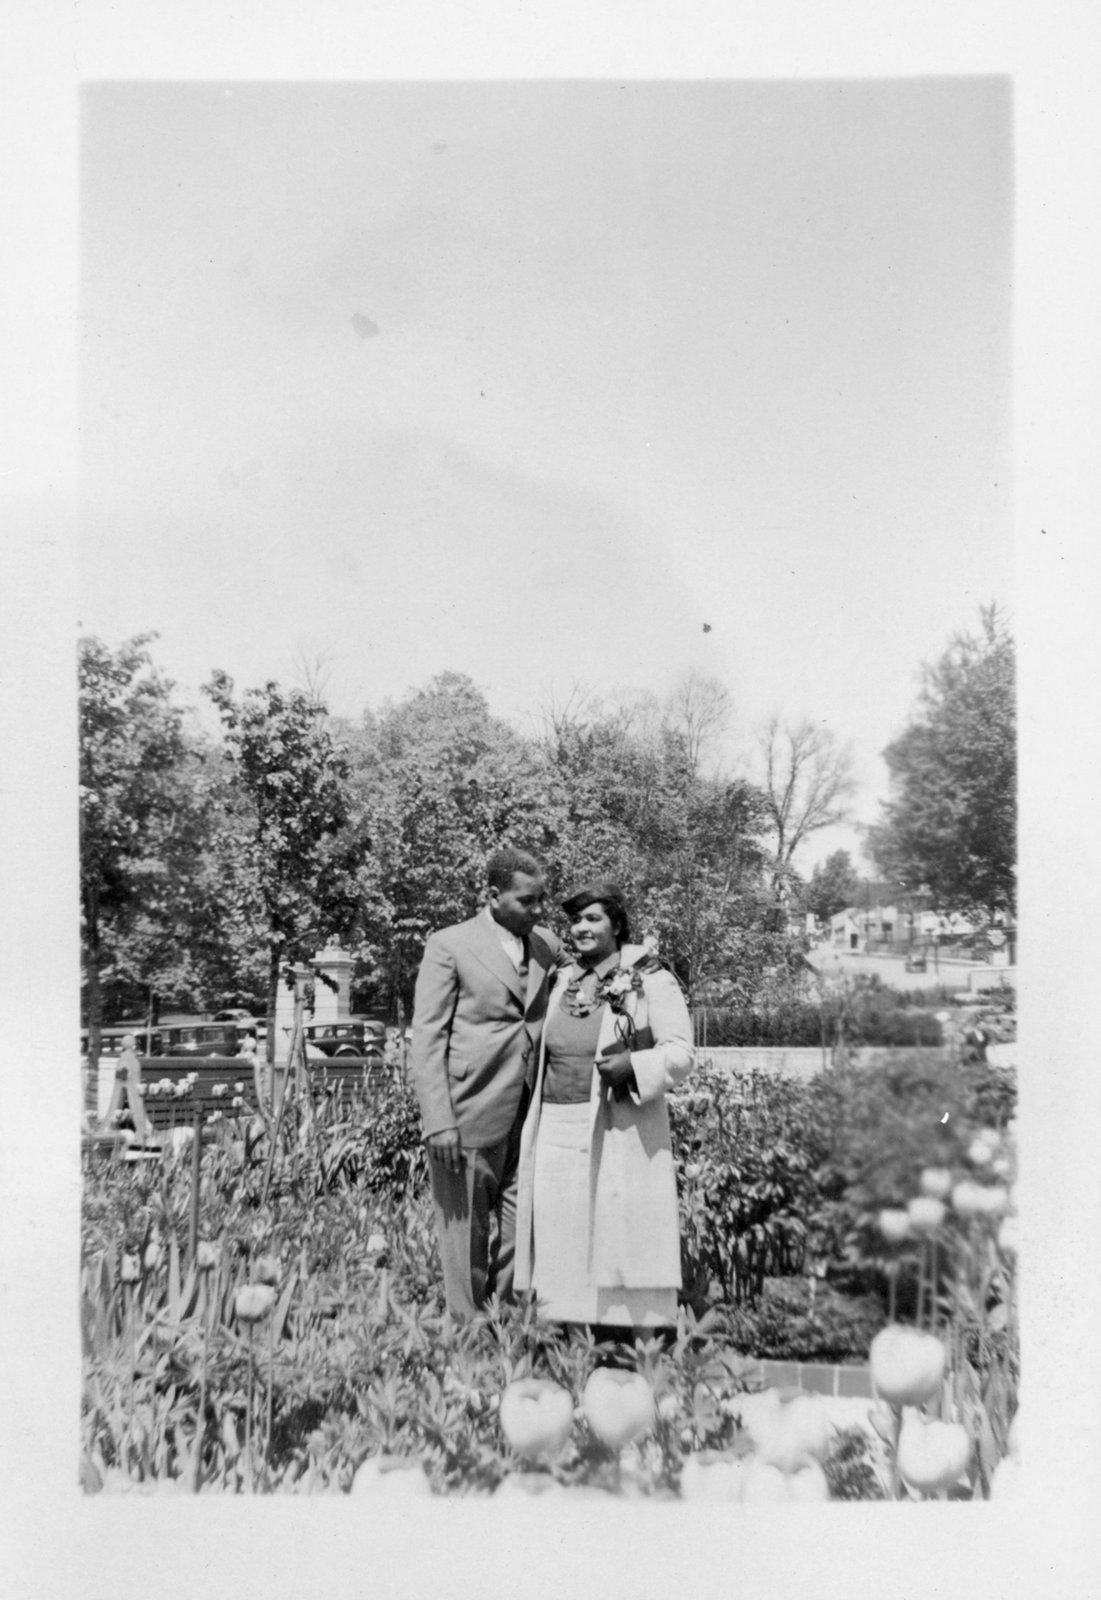 Richard and Iris Bell (nee Sloman) on their wedding day in 1939. Courtesy the Brock University Archives.